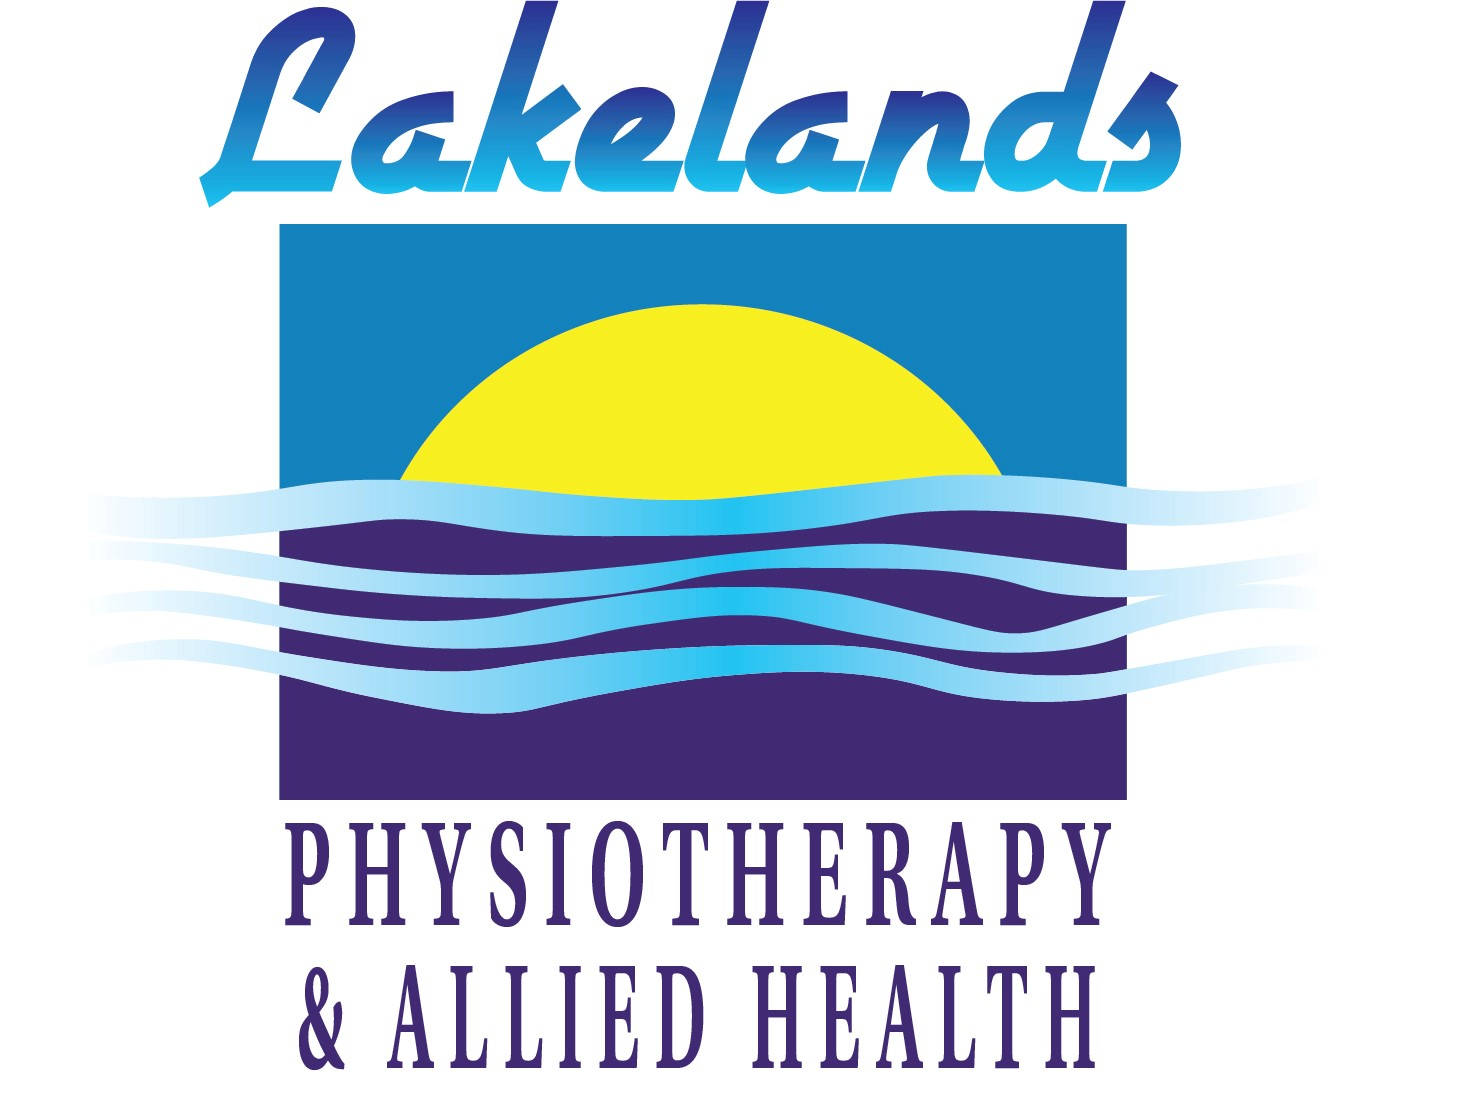 Lakelands Physiotherapy & Allied Health Logo